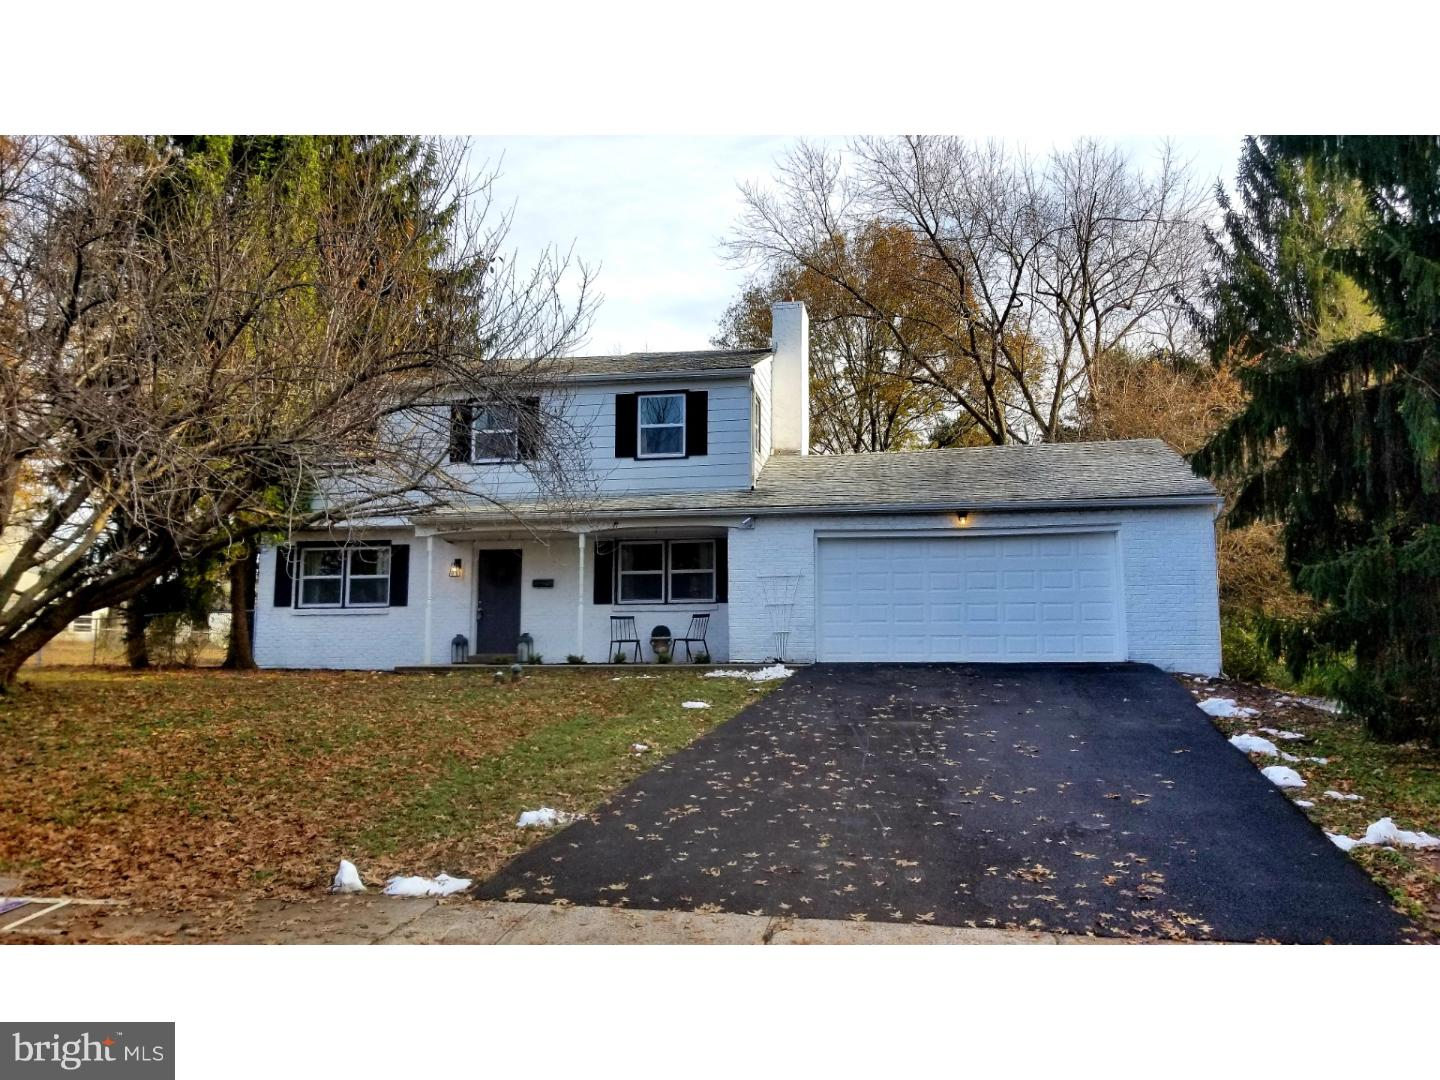 364 STONEHAVEN DRIVE, RED HILL, PA 18076